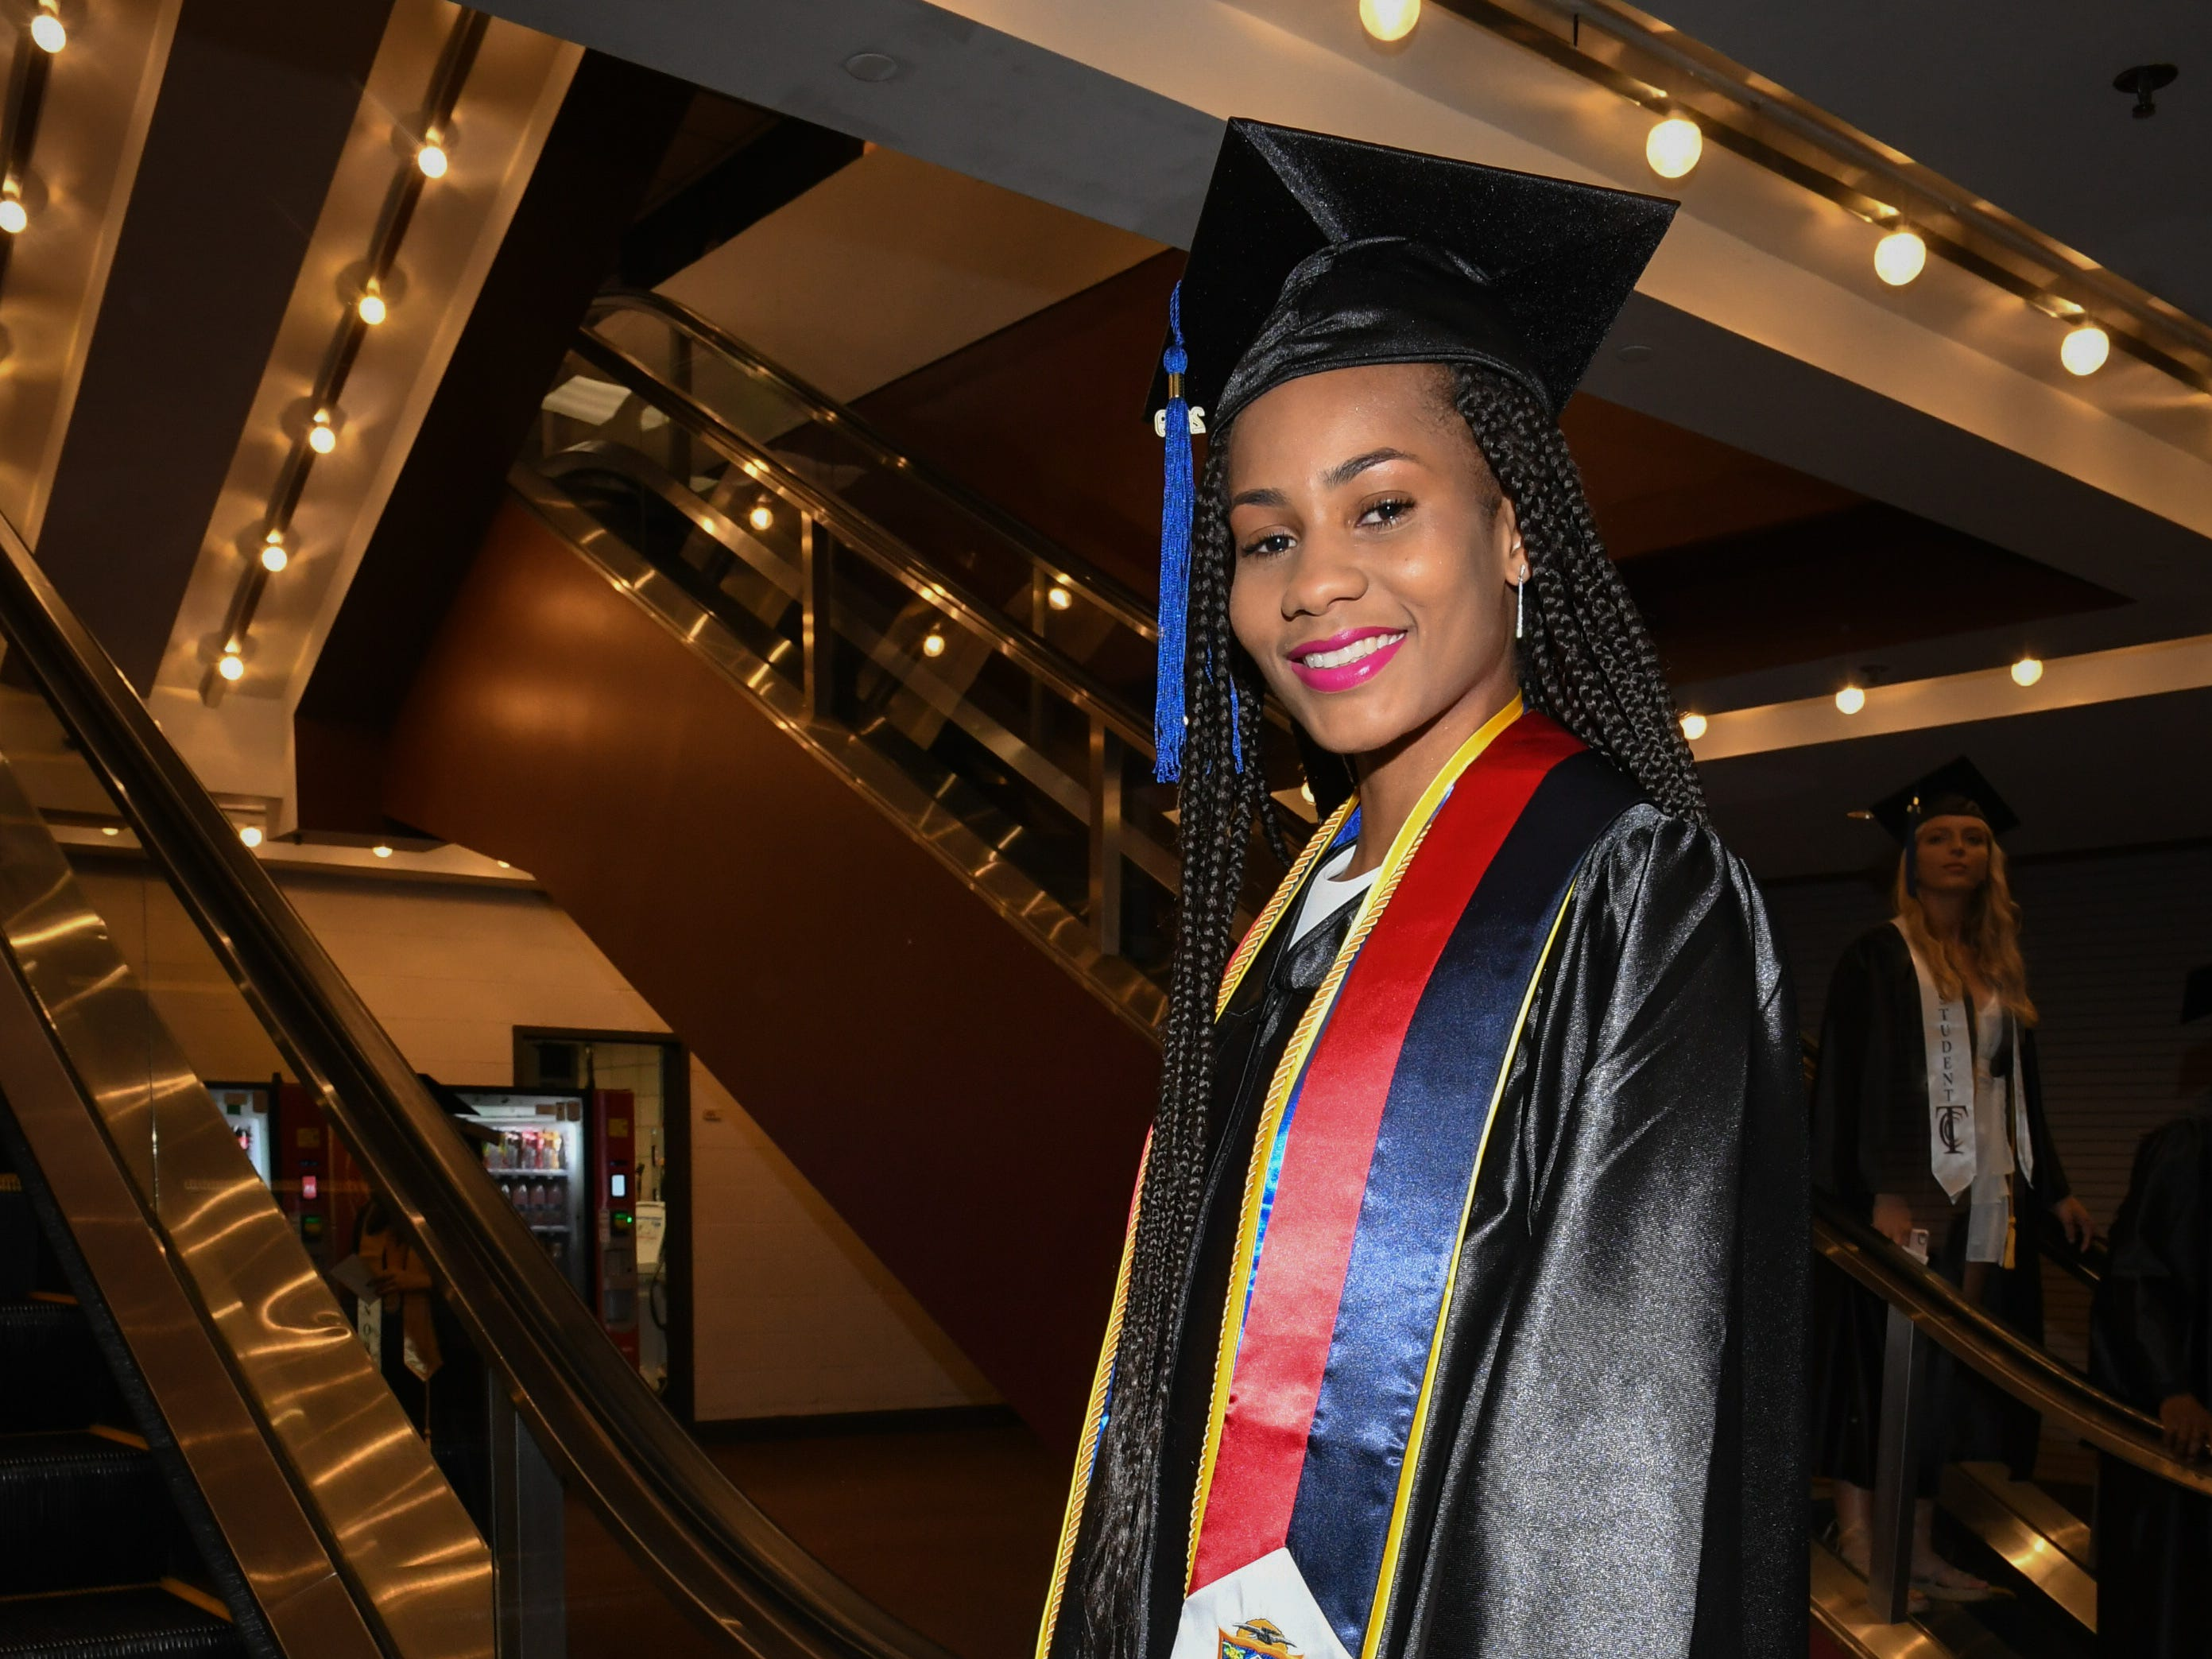 Jahmilah Lake, an international student from St. Martin, wears a stole of the island's flag after graduating from Tallahassee Community College at Donald L. Tucker Civic Center Saturday, May 4, 2019.